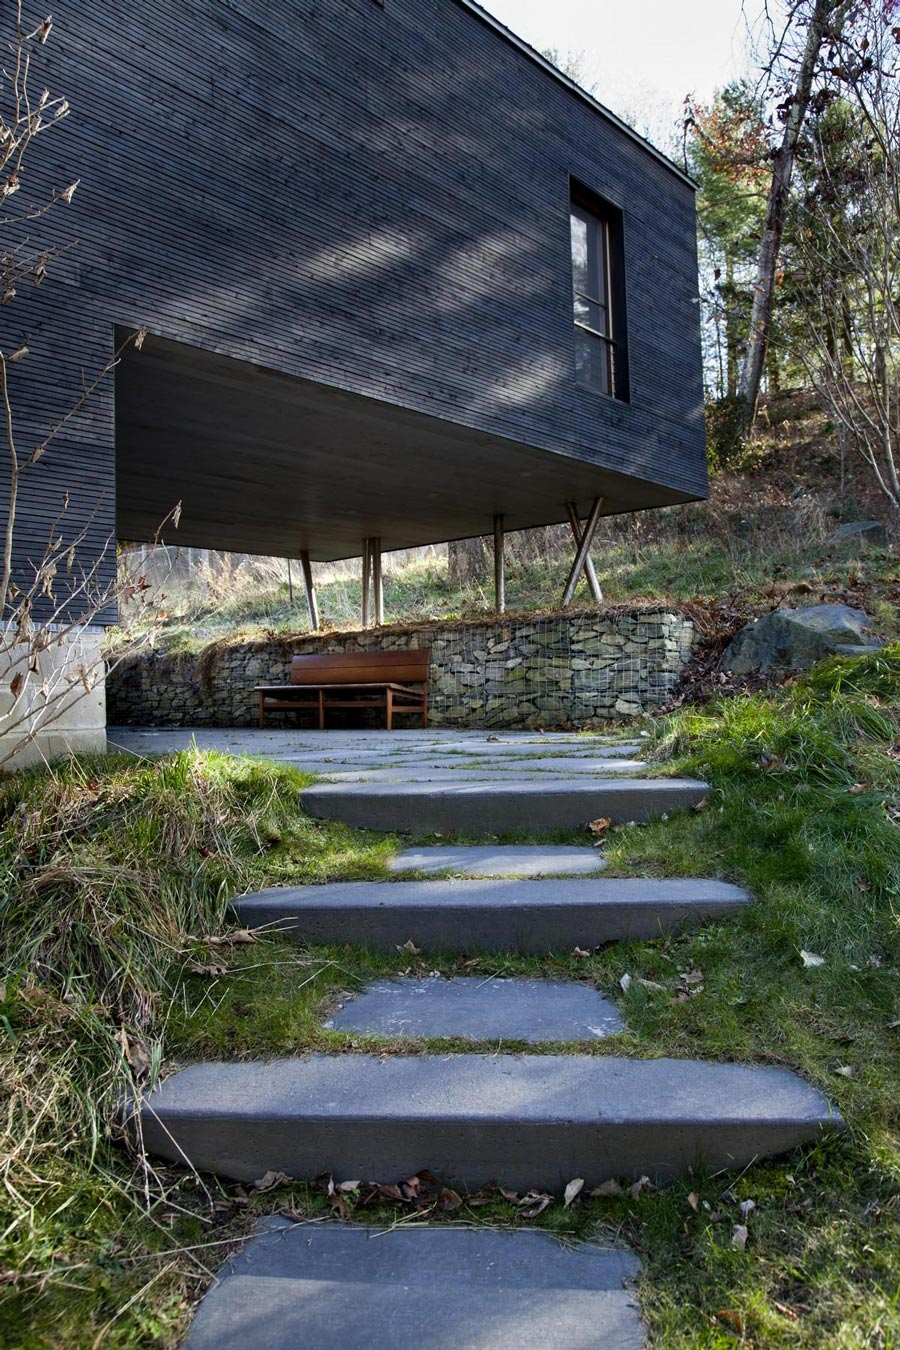 Steps, Stone Wall, Rural Retreat in Bantam, Connecticut